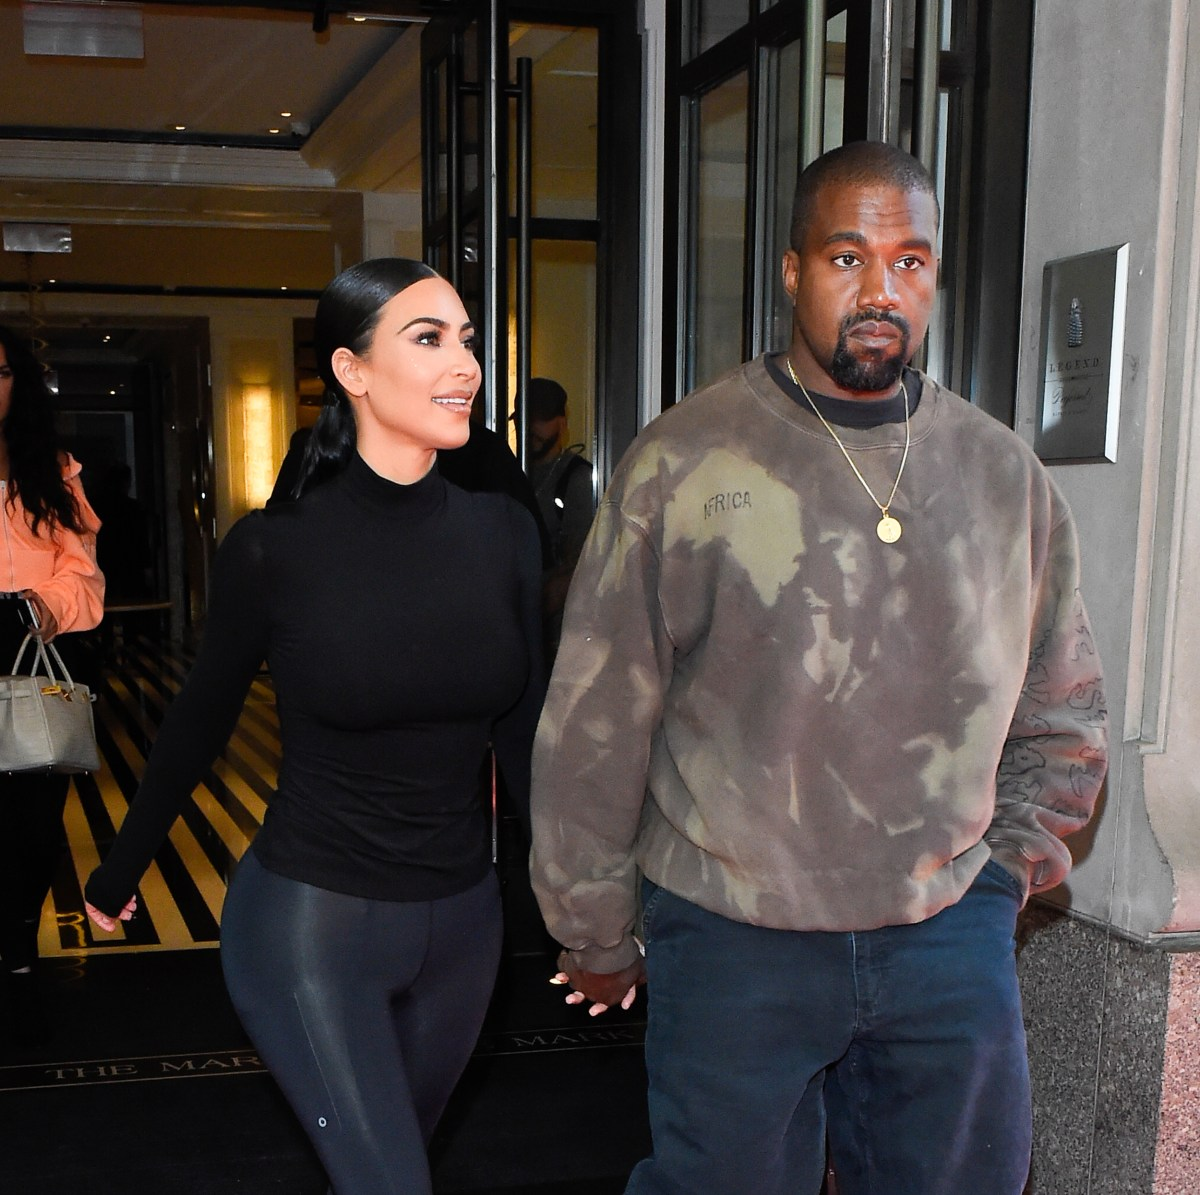 Kim Kardashian's Met Gala dress fight with Kanye West is really about his  desire to control her